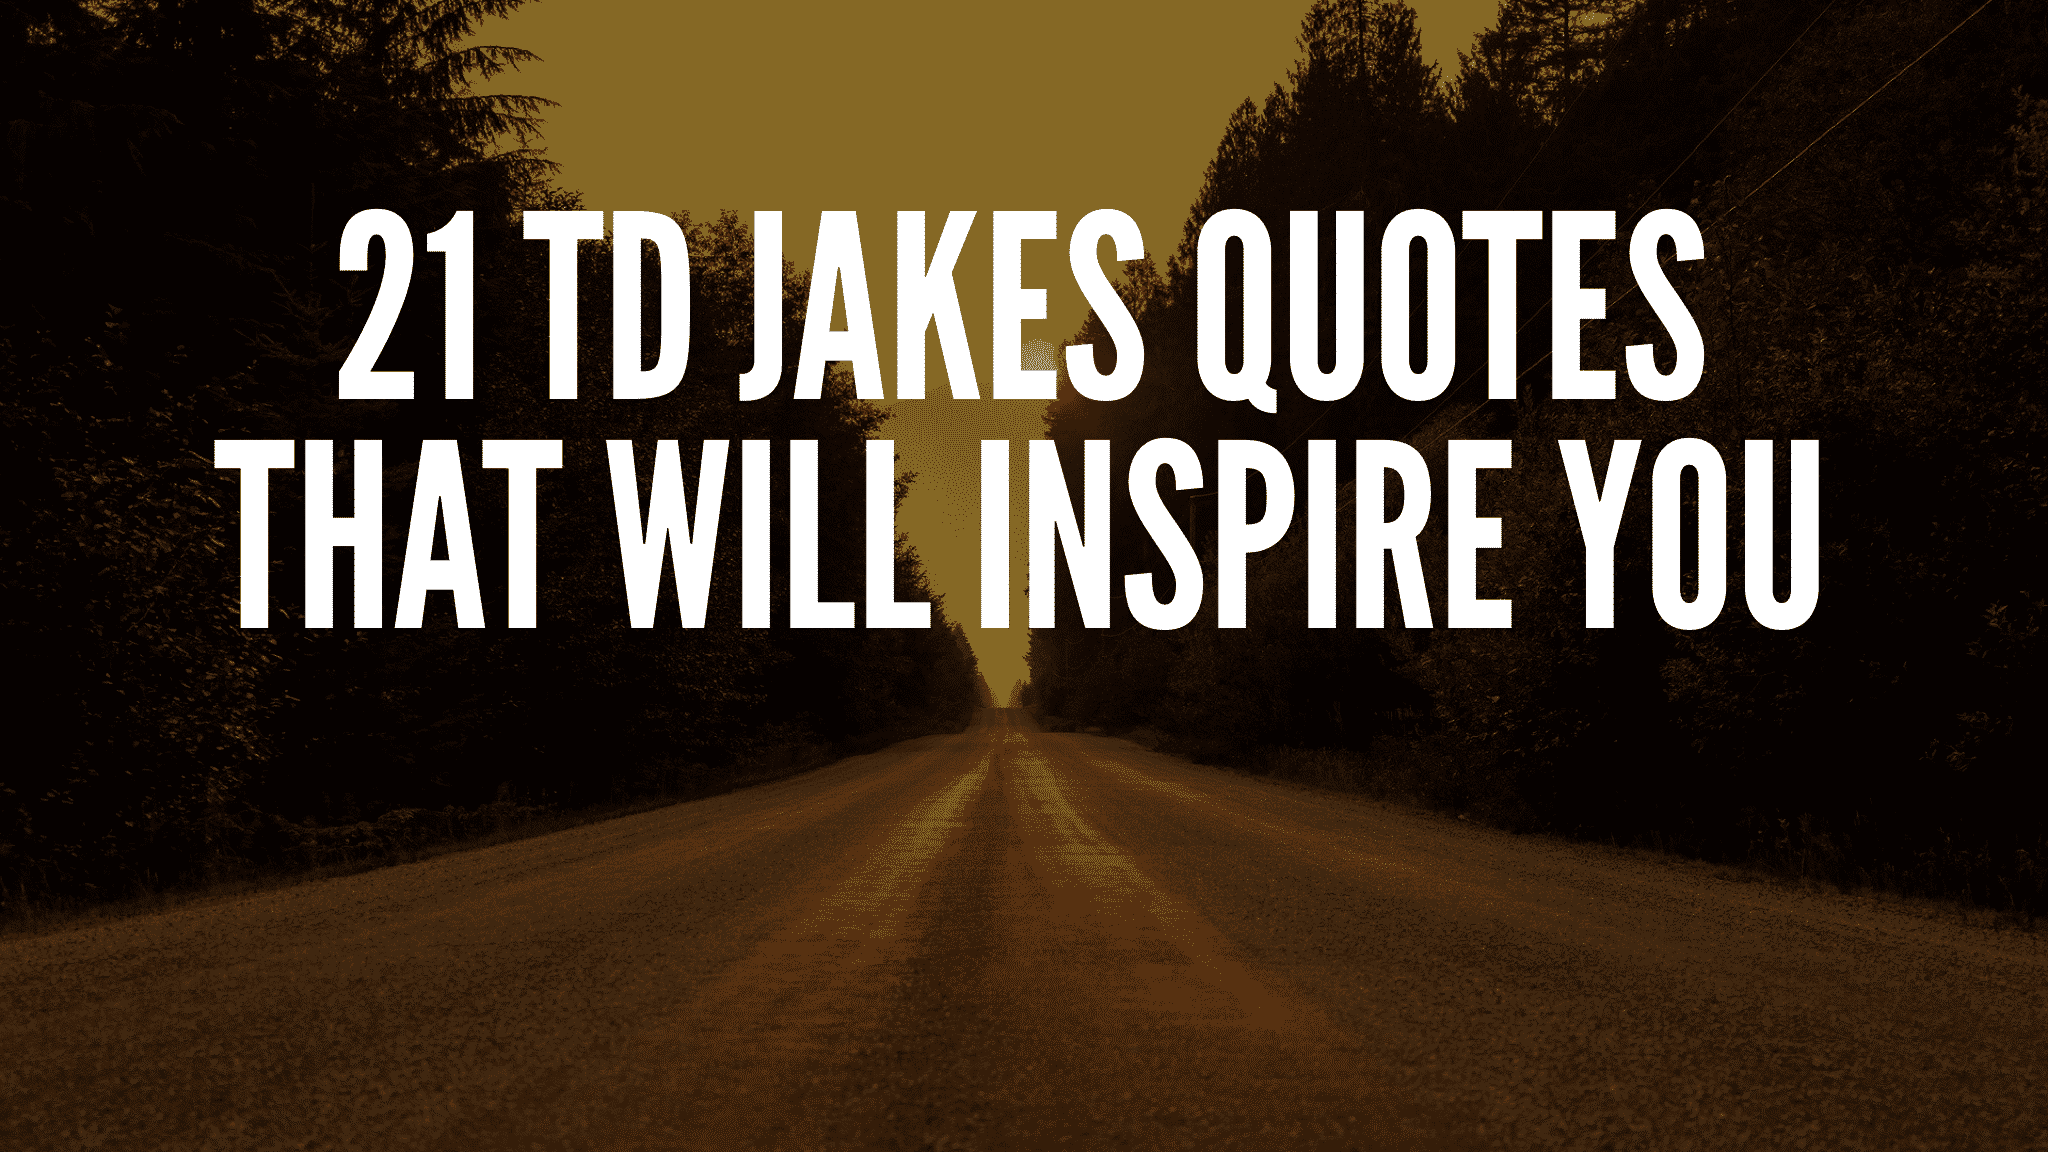 21 TD Jakes Quotes That Will Inspire You